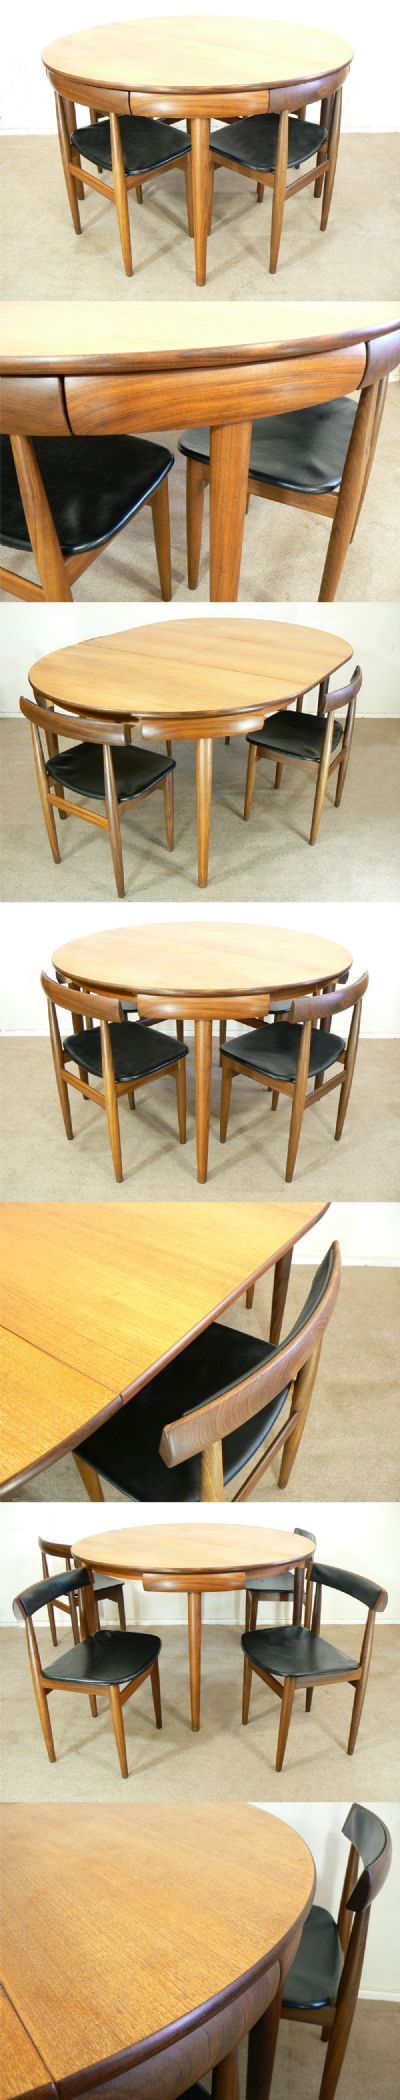 A Frem Rojle 'Roundette' series extending dining table and four matching chairs. Fully restored, a stunning example of this popular set. Two more chairs available.